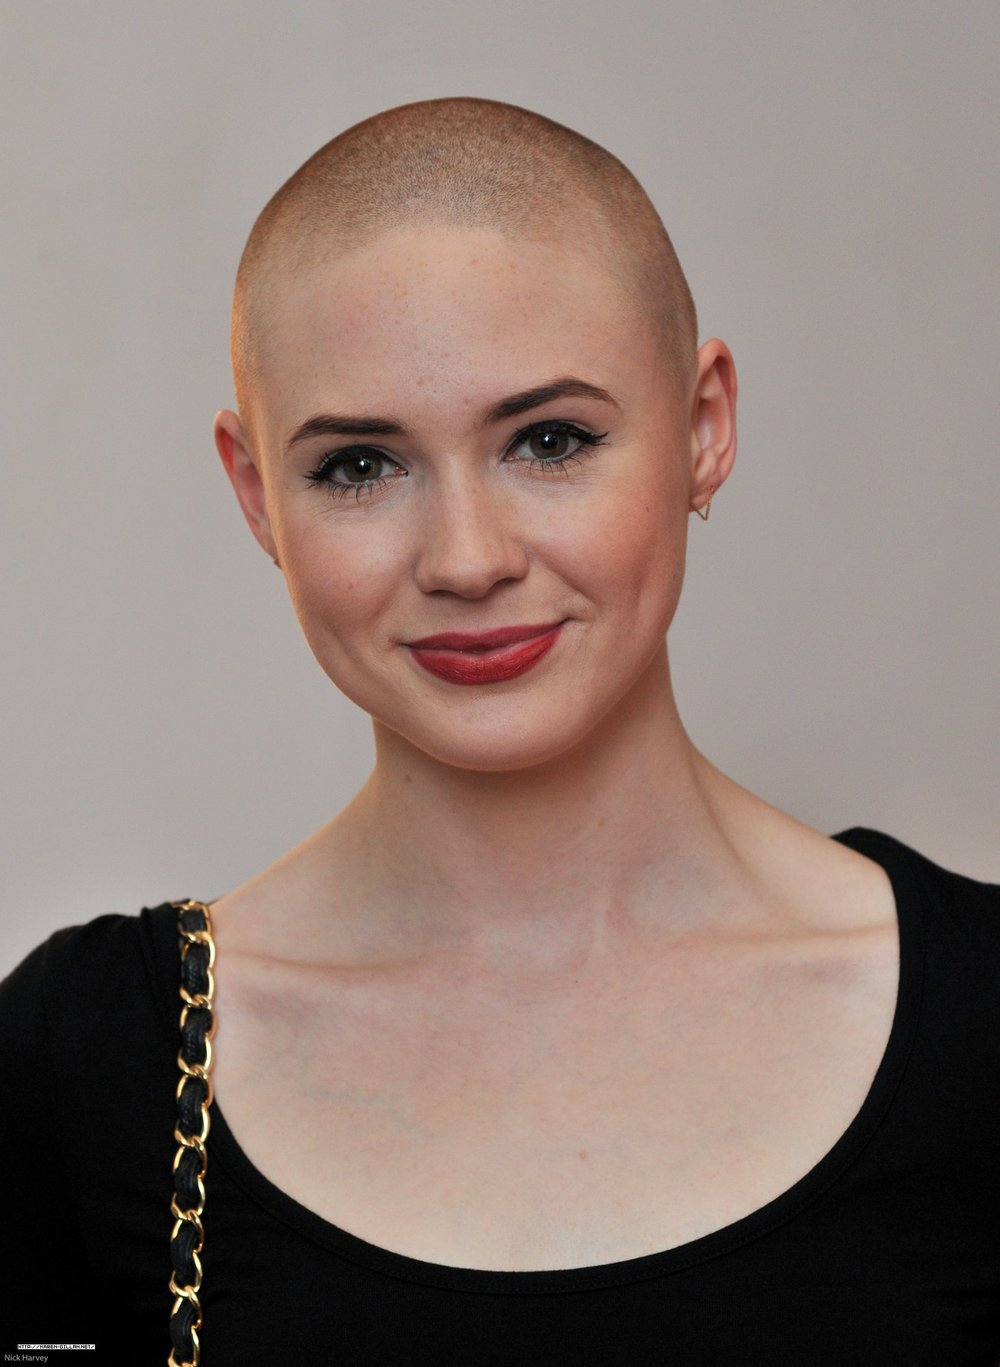 Bald hairstyle for women